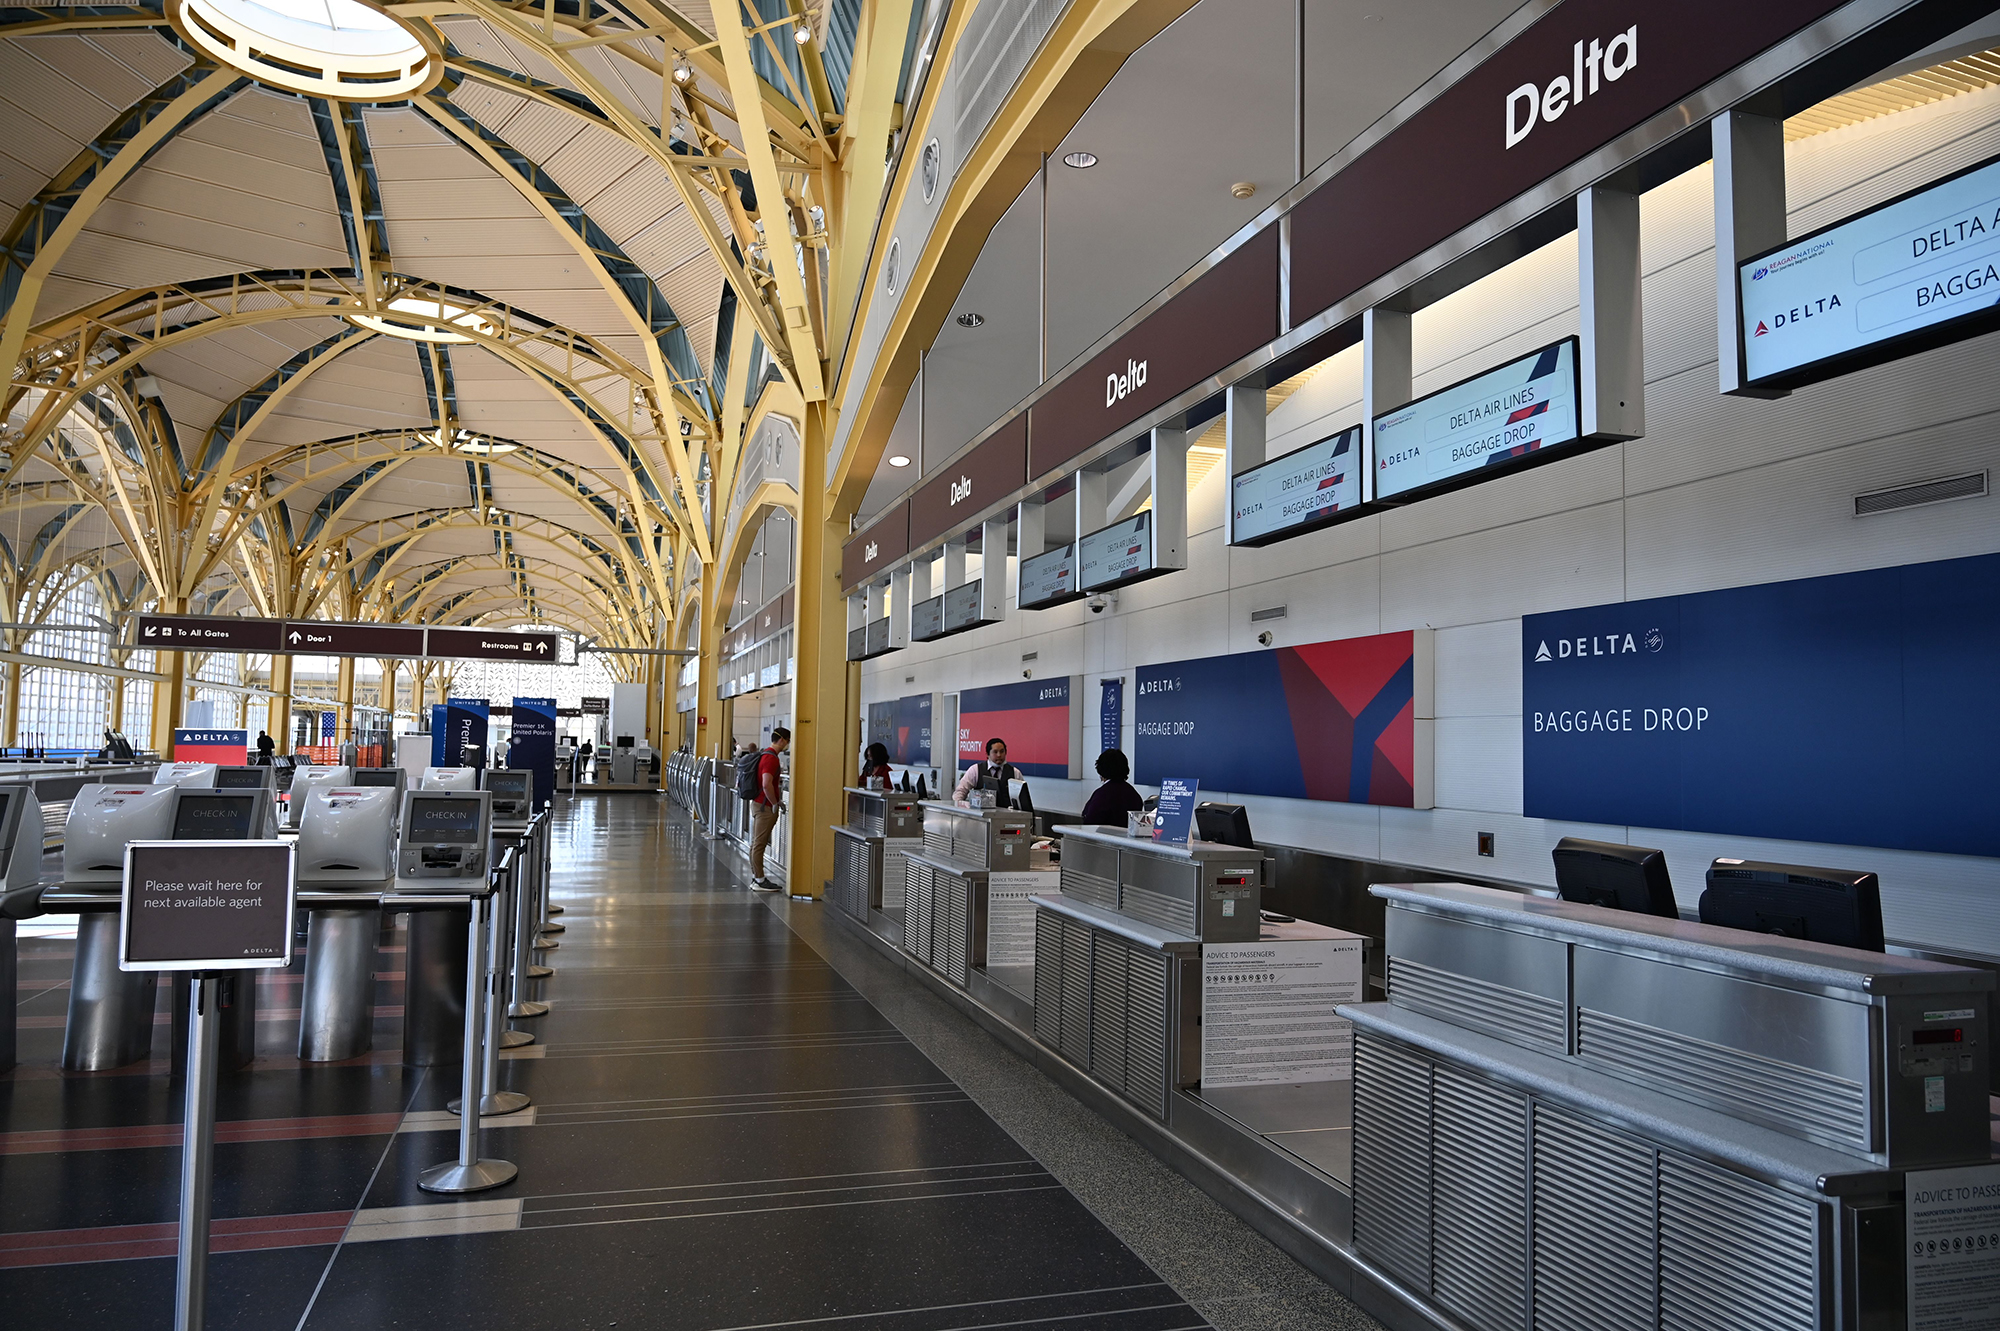 A view of empty Delta checkin counters at Washington National Airport (DCA) on April 11, 2020 in Arlington, Virginia. - Many flights are canceled due to the spread of the Coronavirus over the US. (Photo by Daniel SLIM / AFP) (Photo by DANIEL SLIM/AFP via Getty Images)